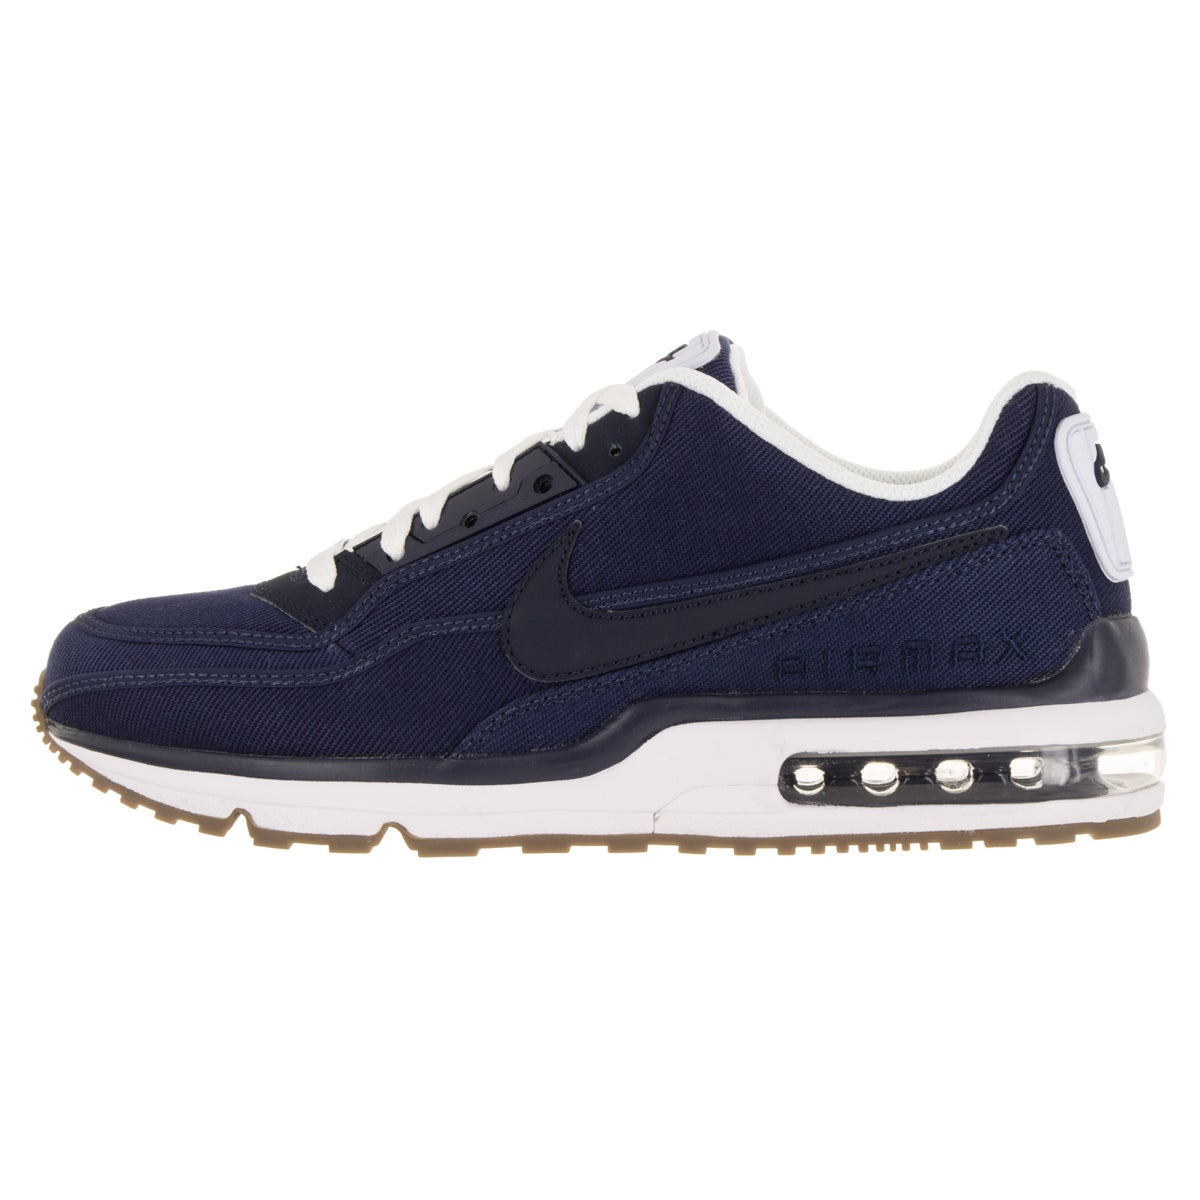 big sale 24f0b bceca Shop Nike Men s Air Max Ltd 3 Txt Mid Navy Obsidian White Gm Dark Brw  Running Shoe - Free Shipping Today - Overstock - 12120035